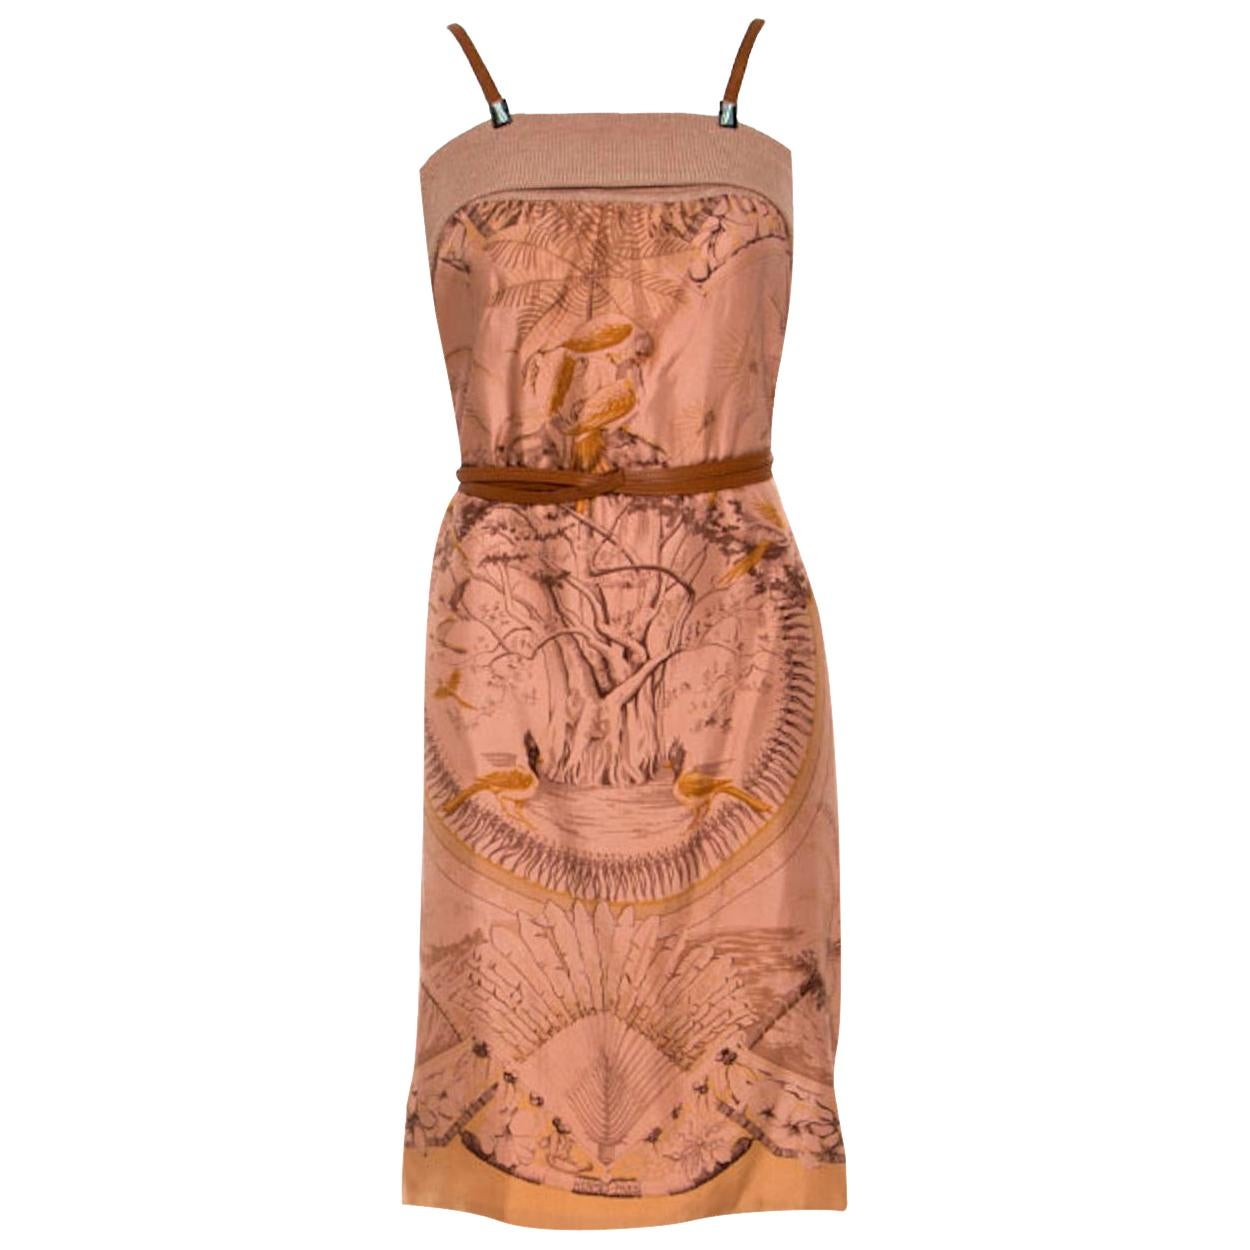 NEW Stunning HERMES Paris Printed Silk & Leather Belted Dress